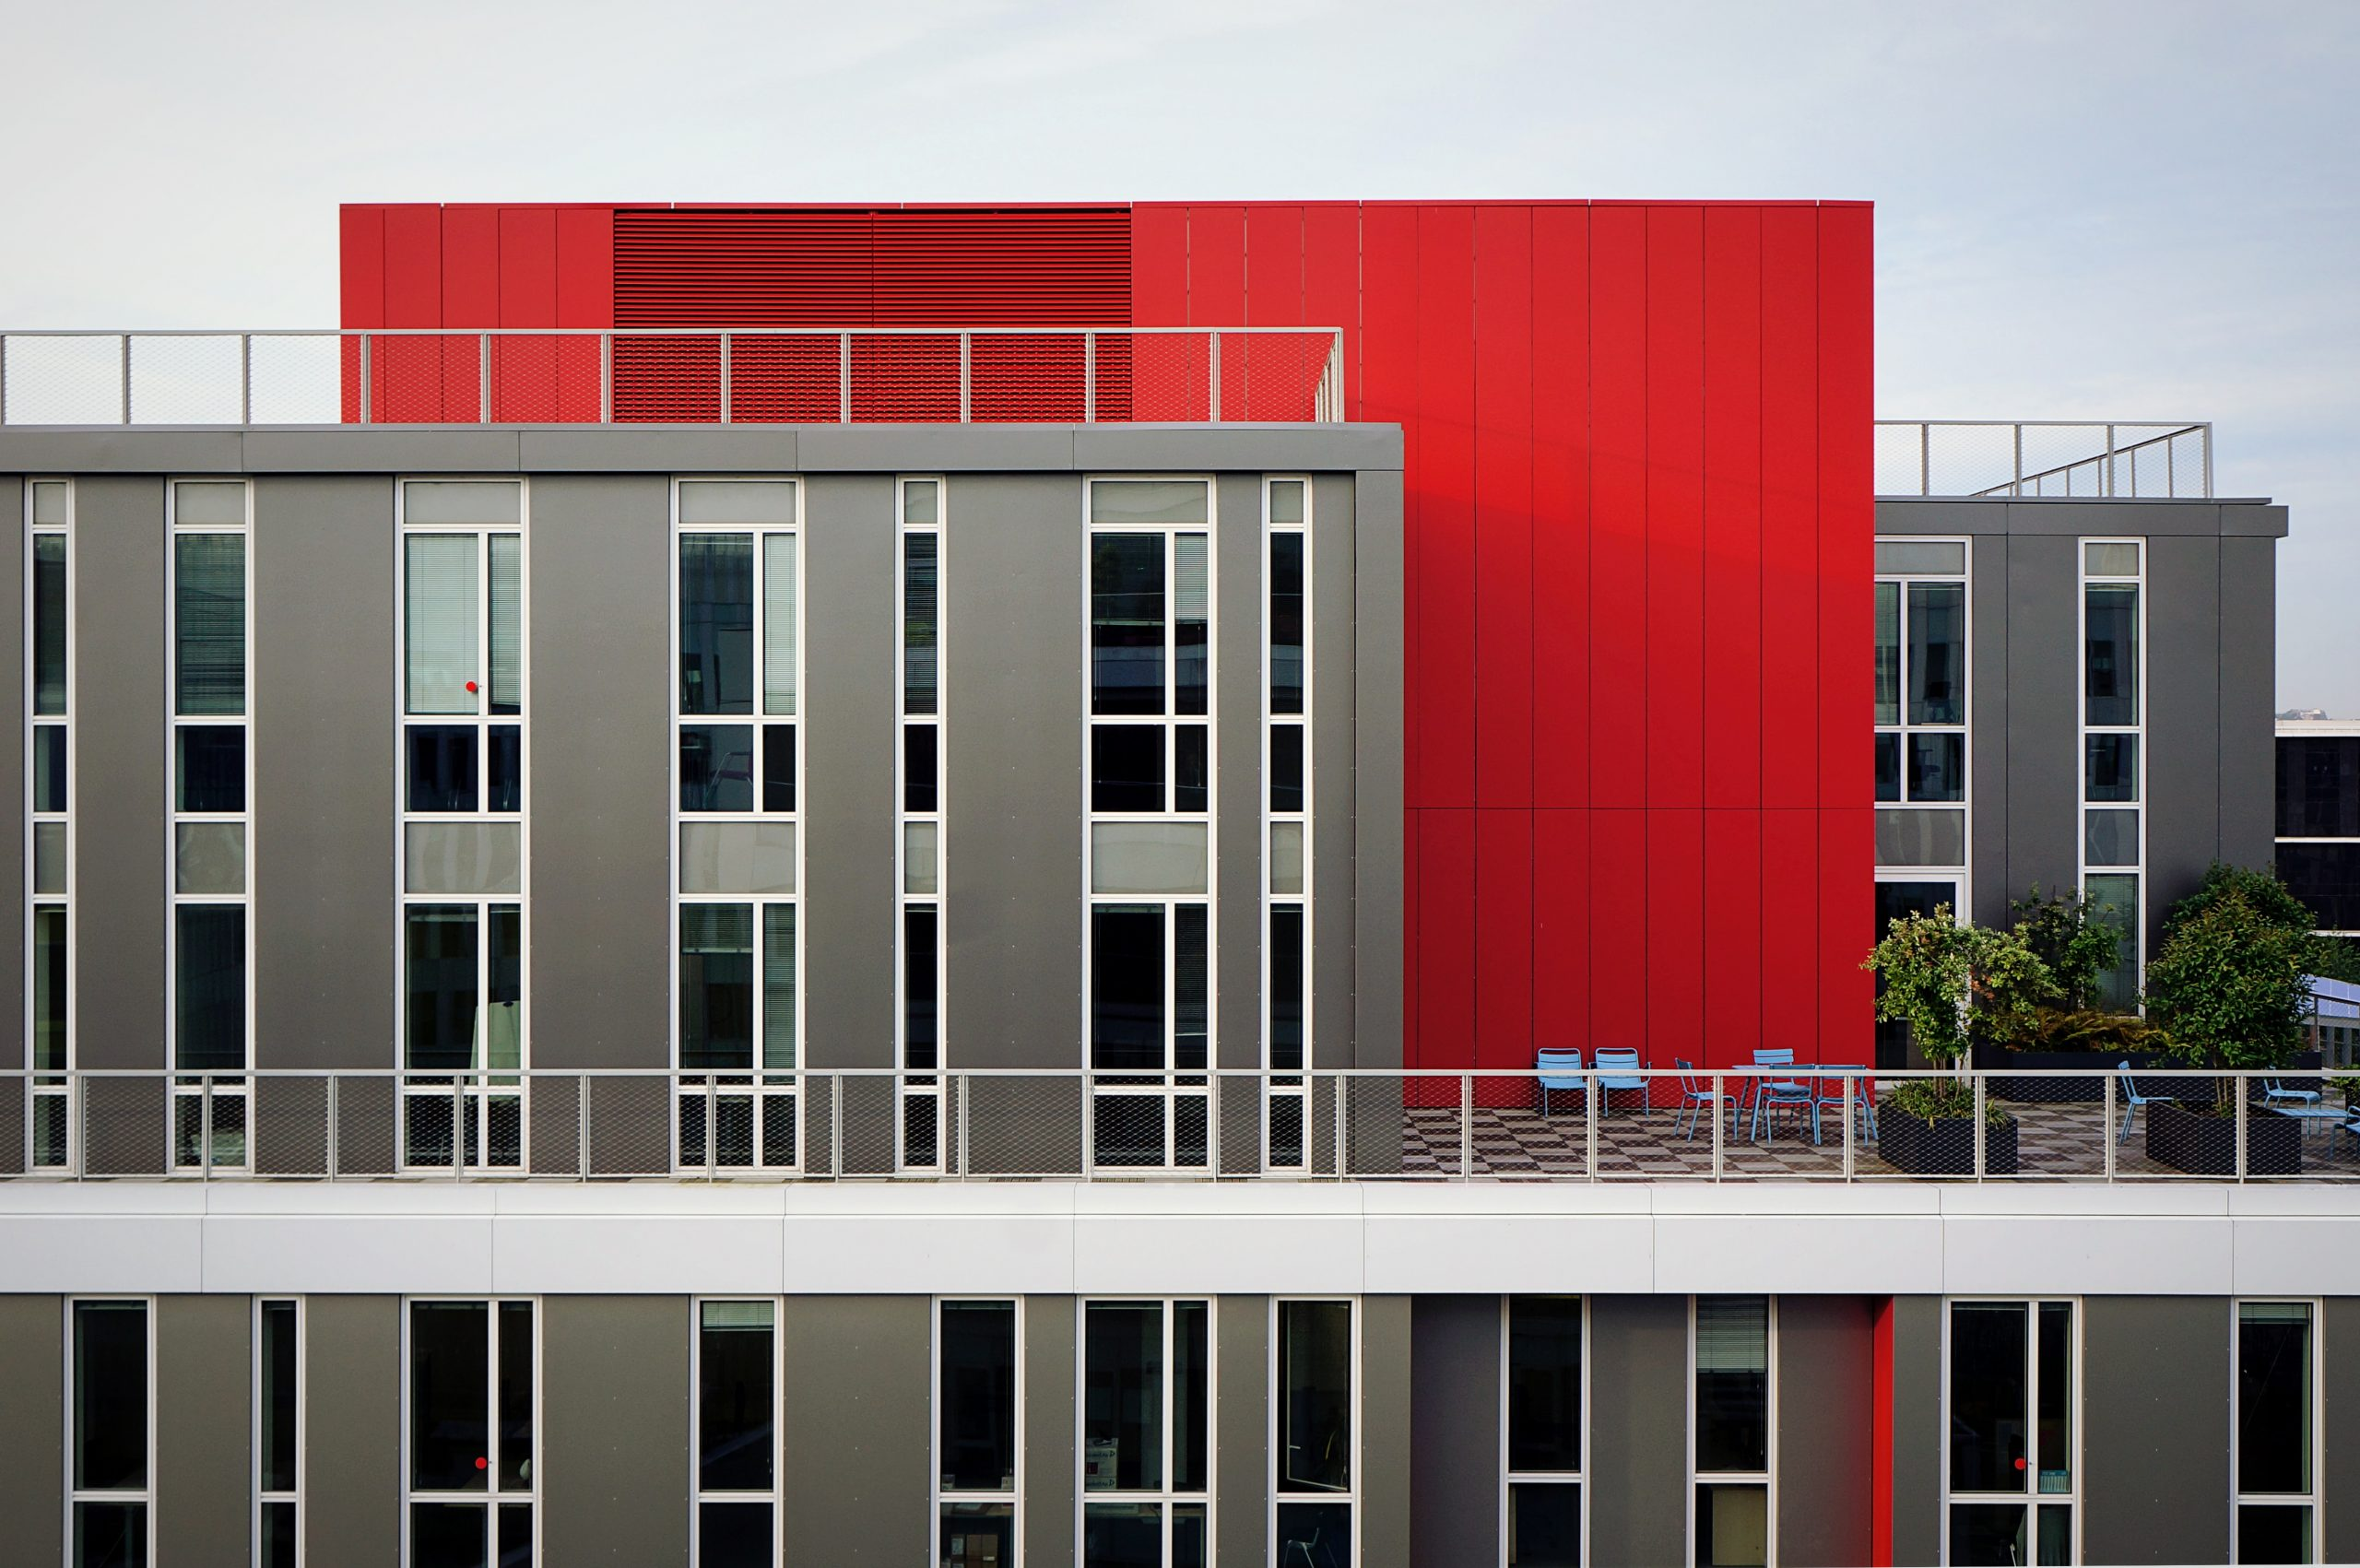 wallpaper Aerial photography of red and gray building